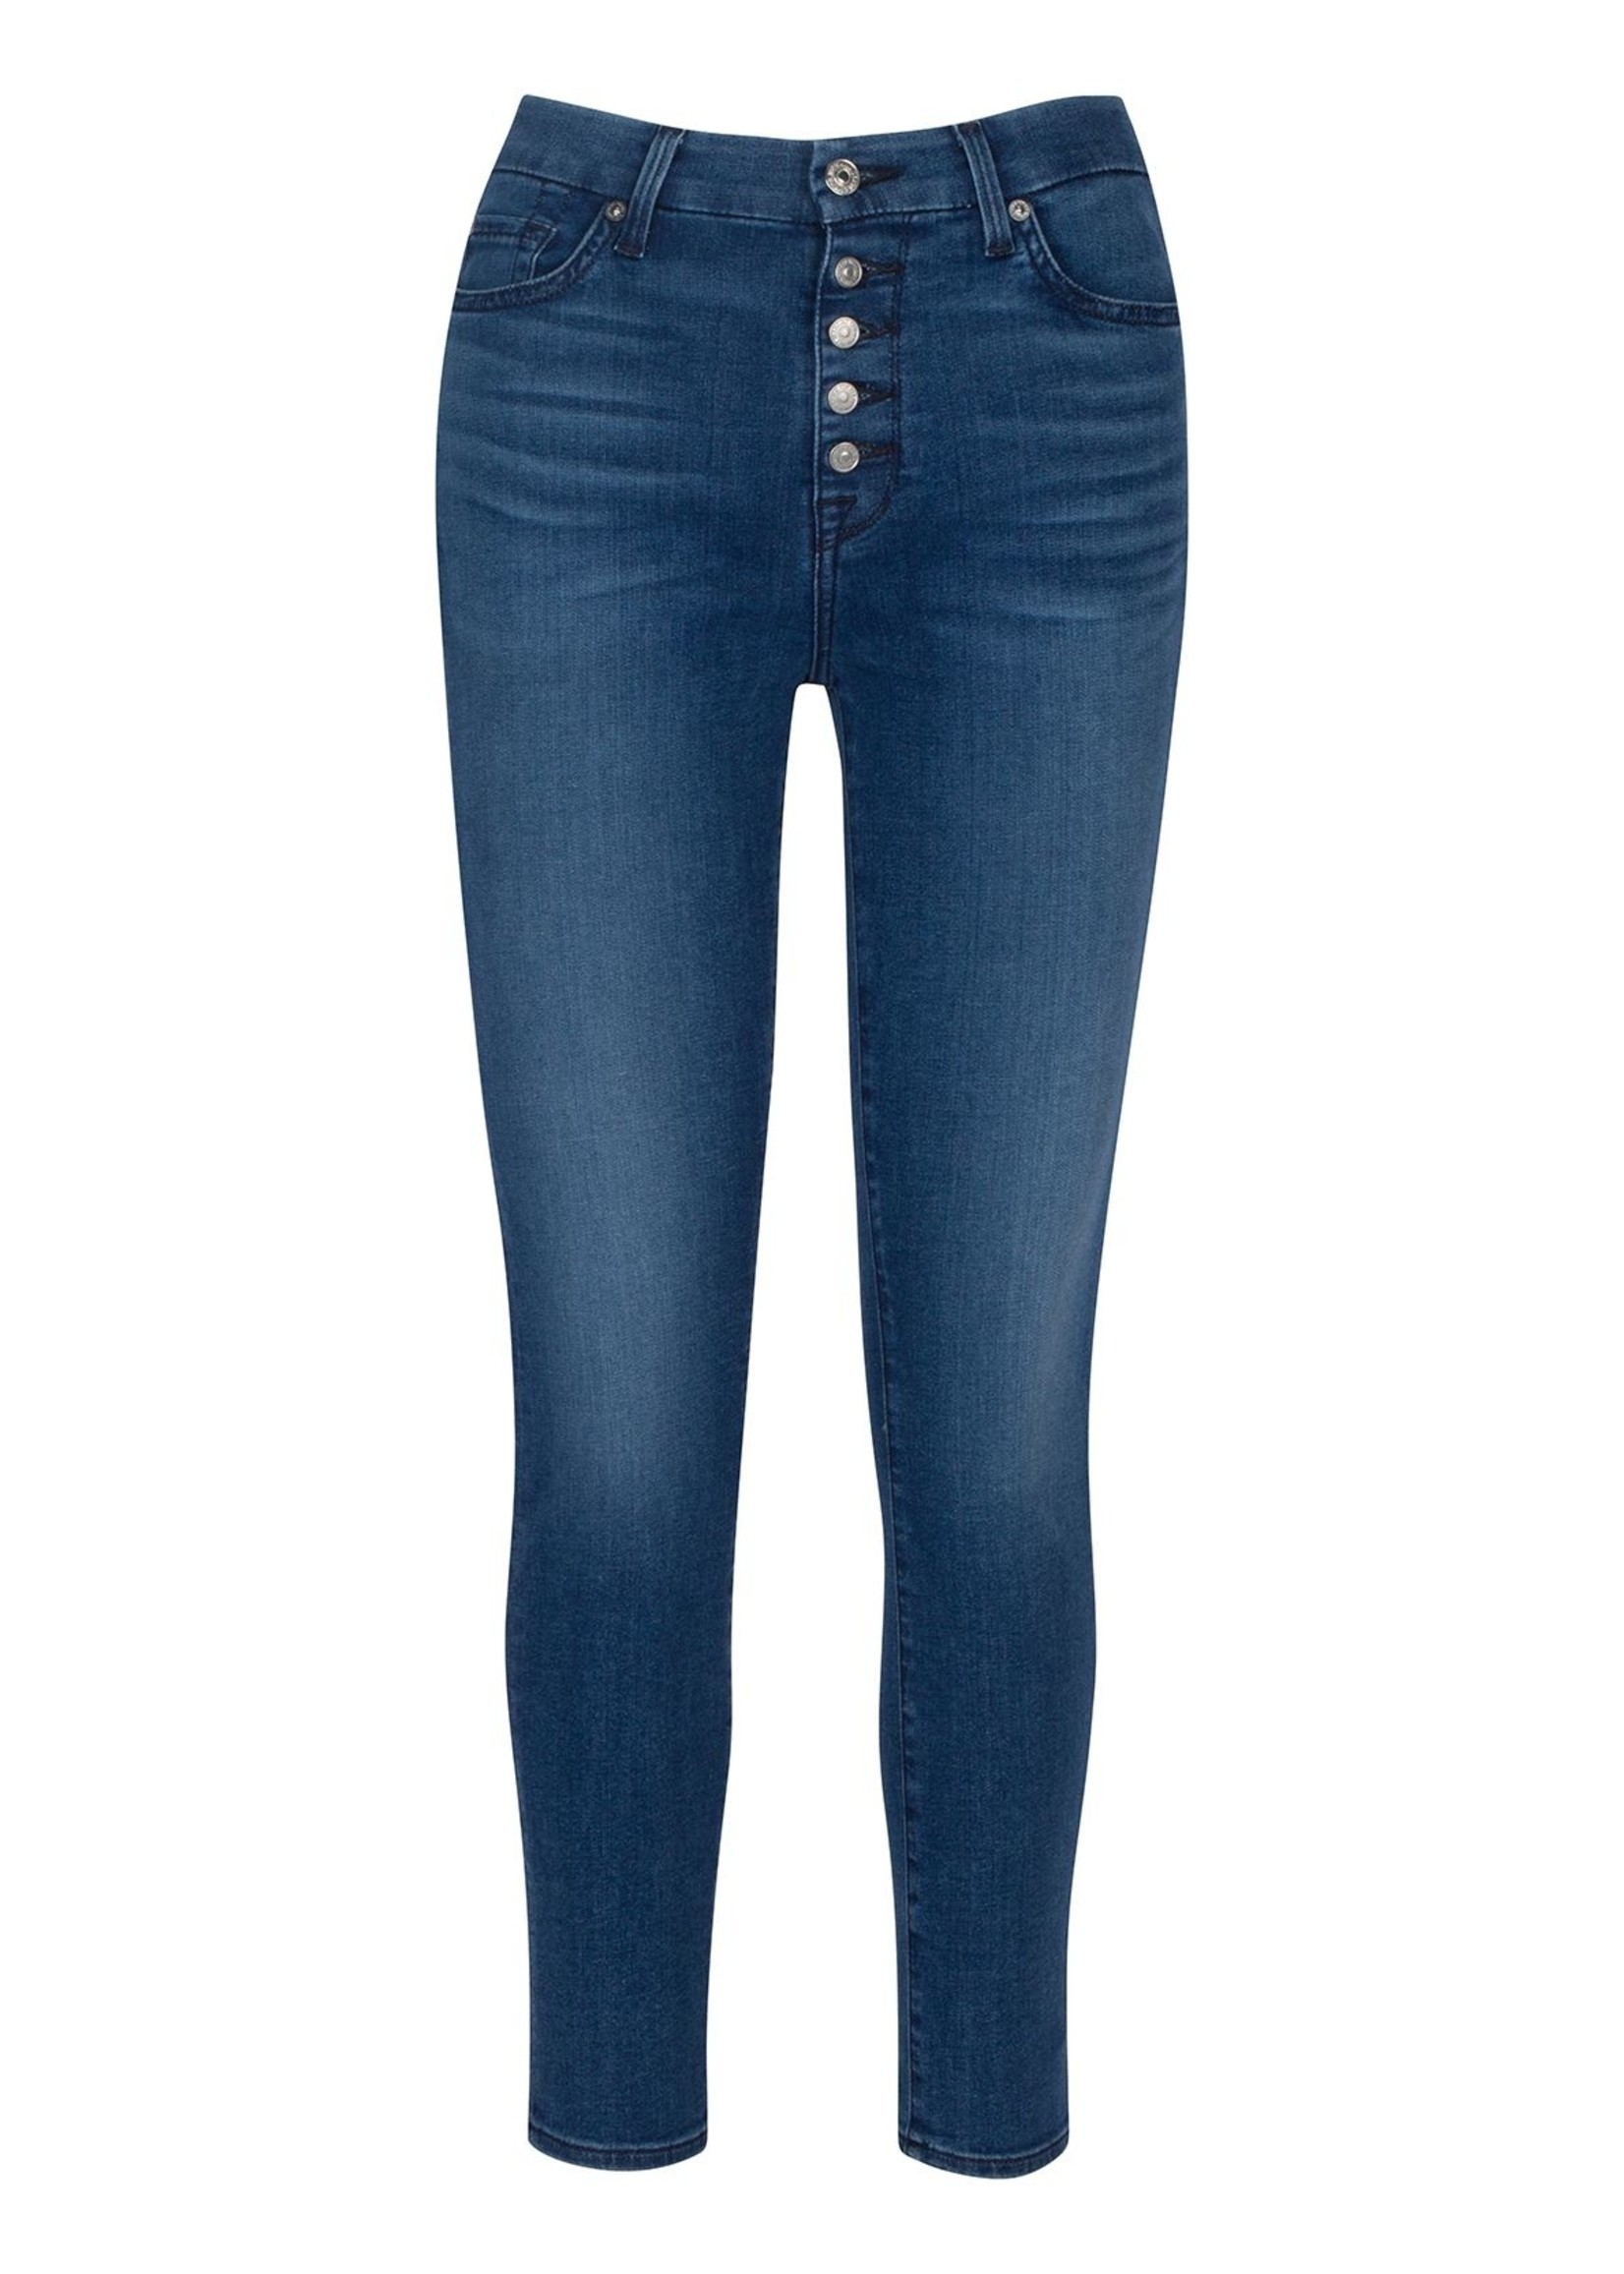 7 for All Mankind Highwaist Ankle Skinny - Peace Blue